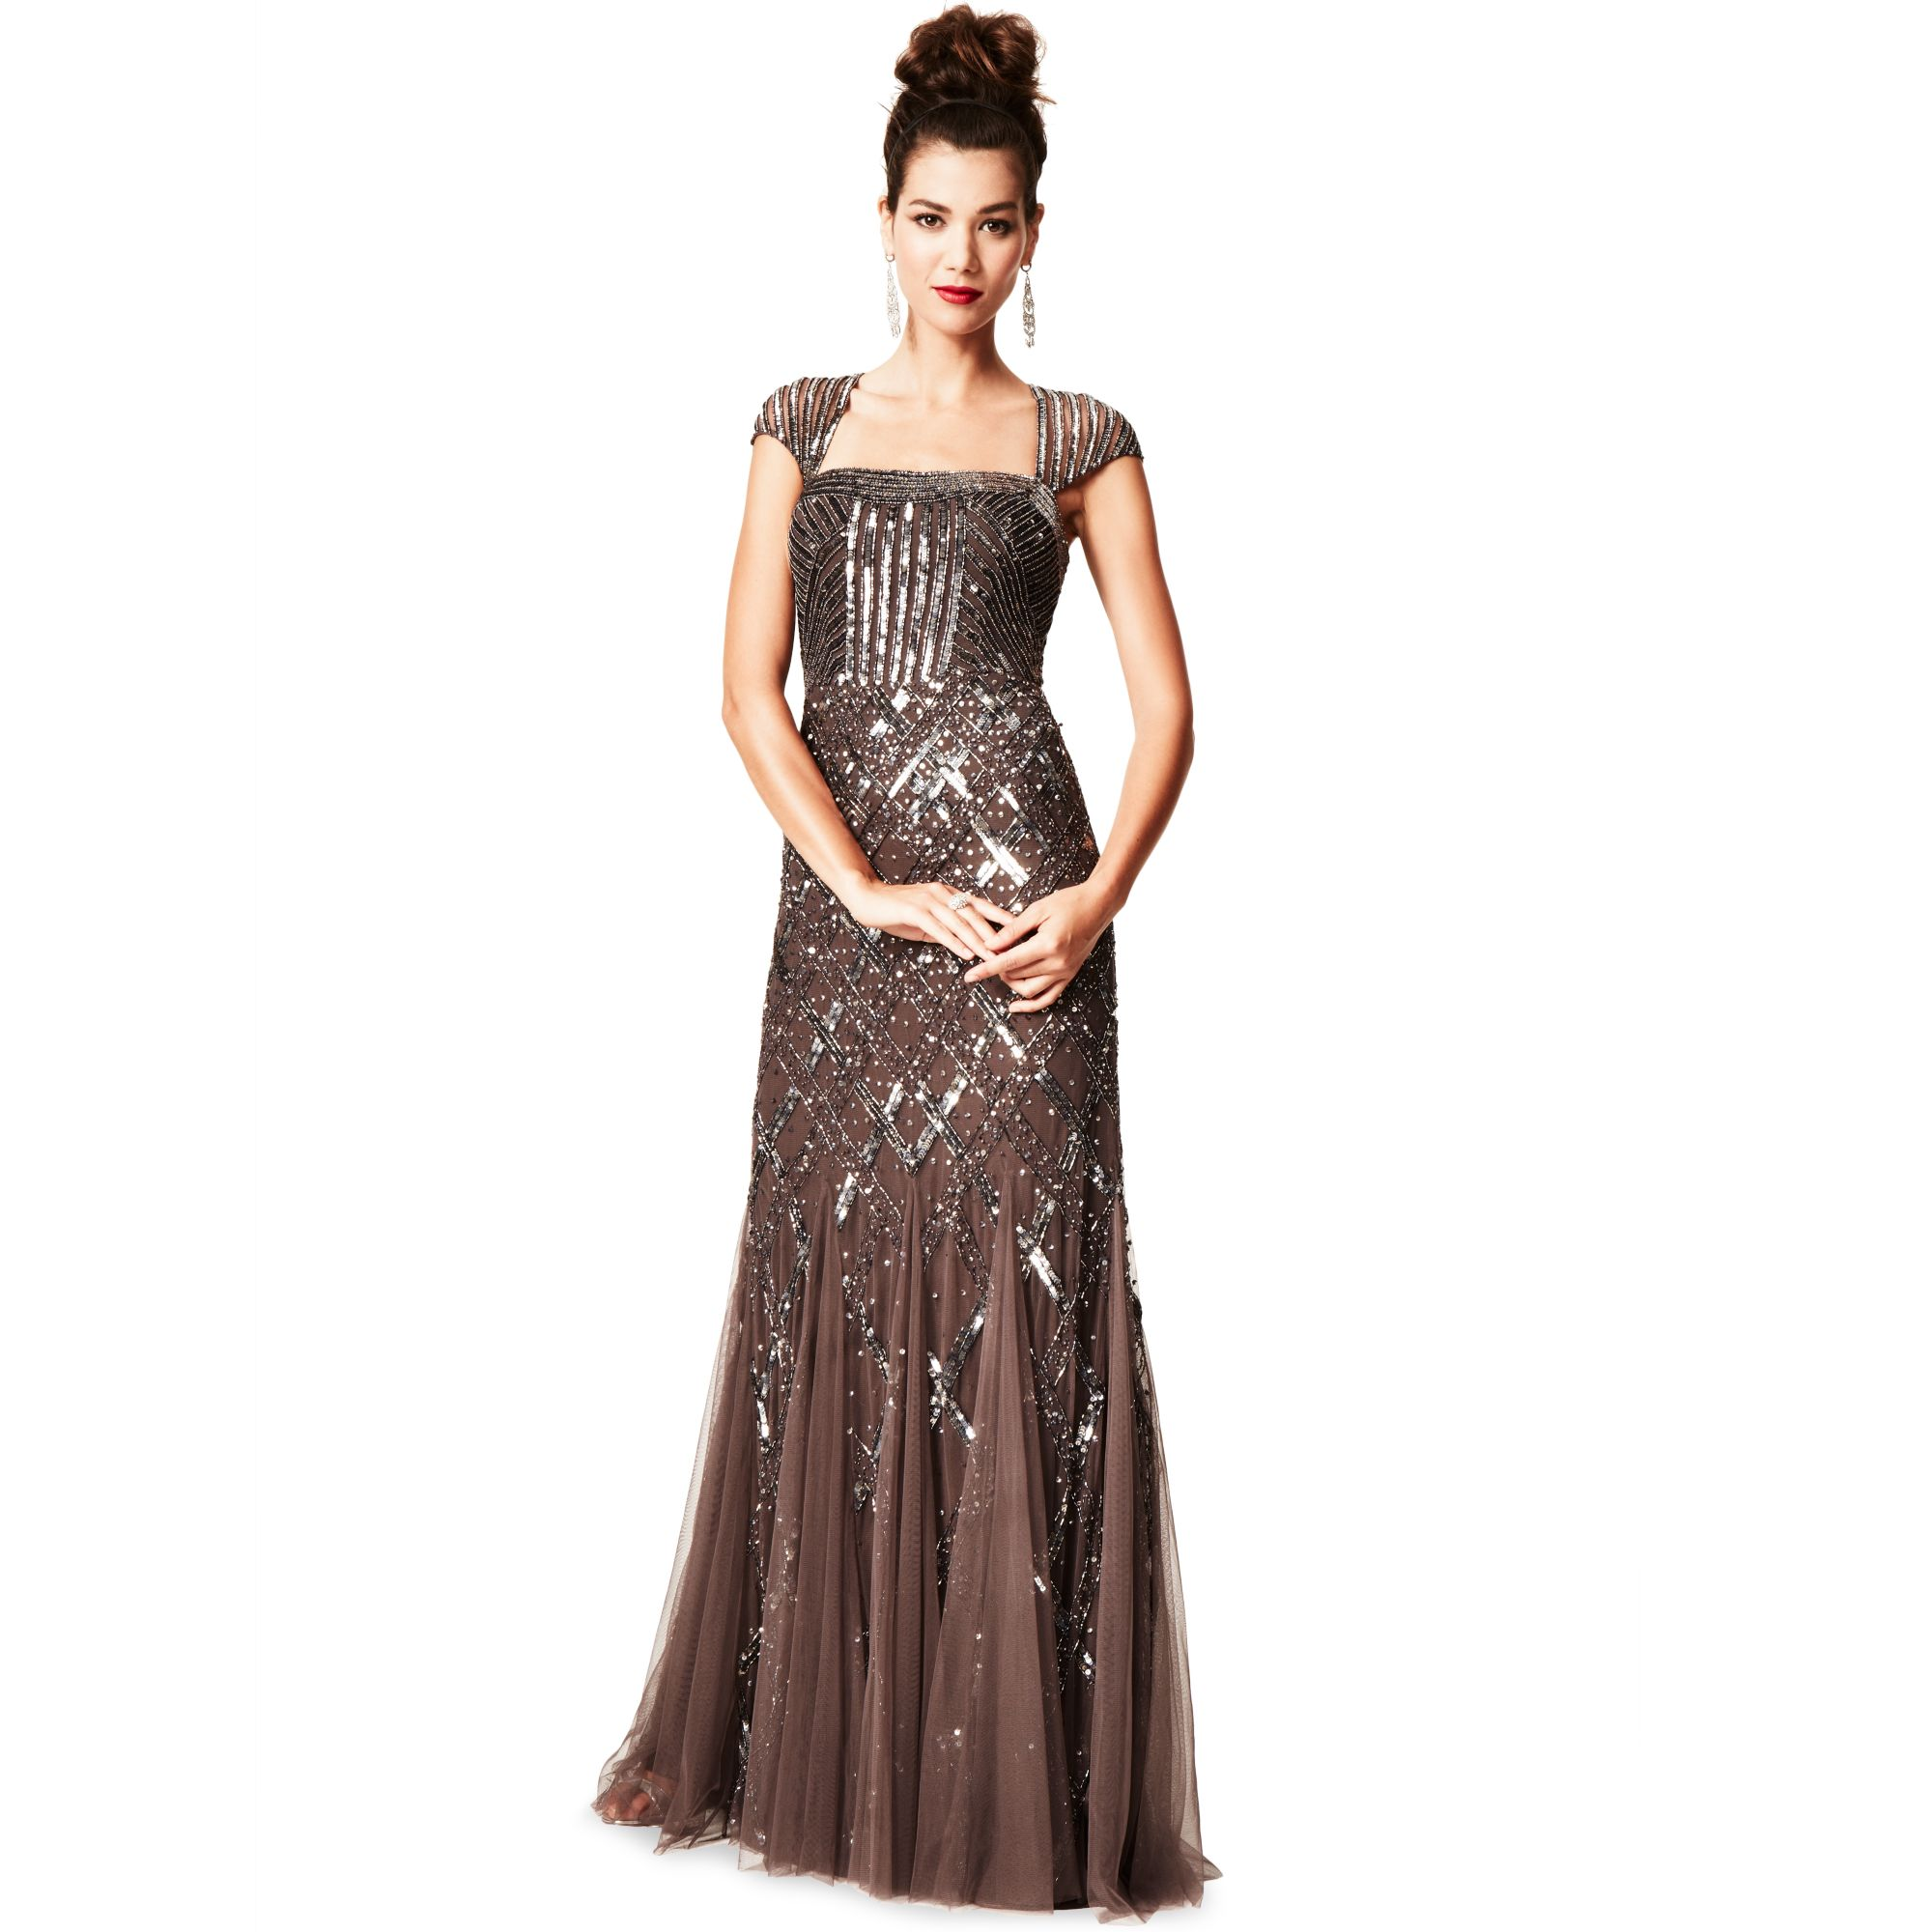 Lyst - Adrianna Papell Cap Sleeve Sequined Beaded Gown Dress in Purple